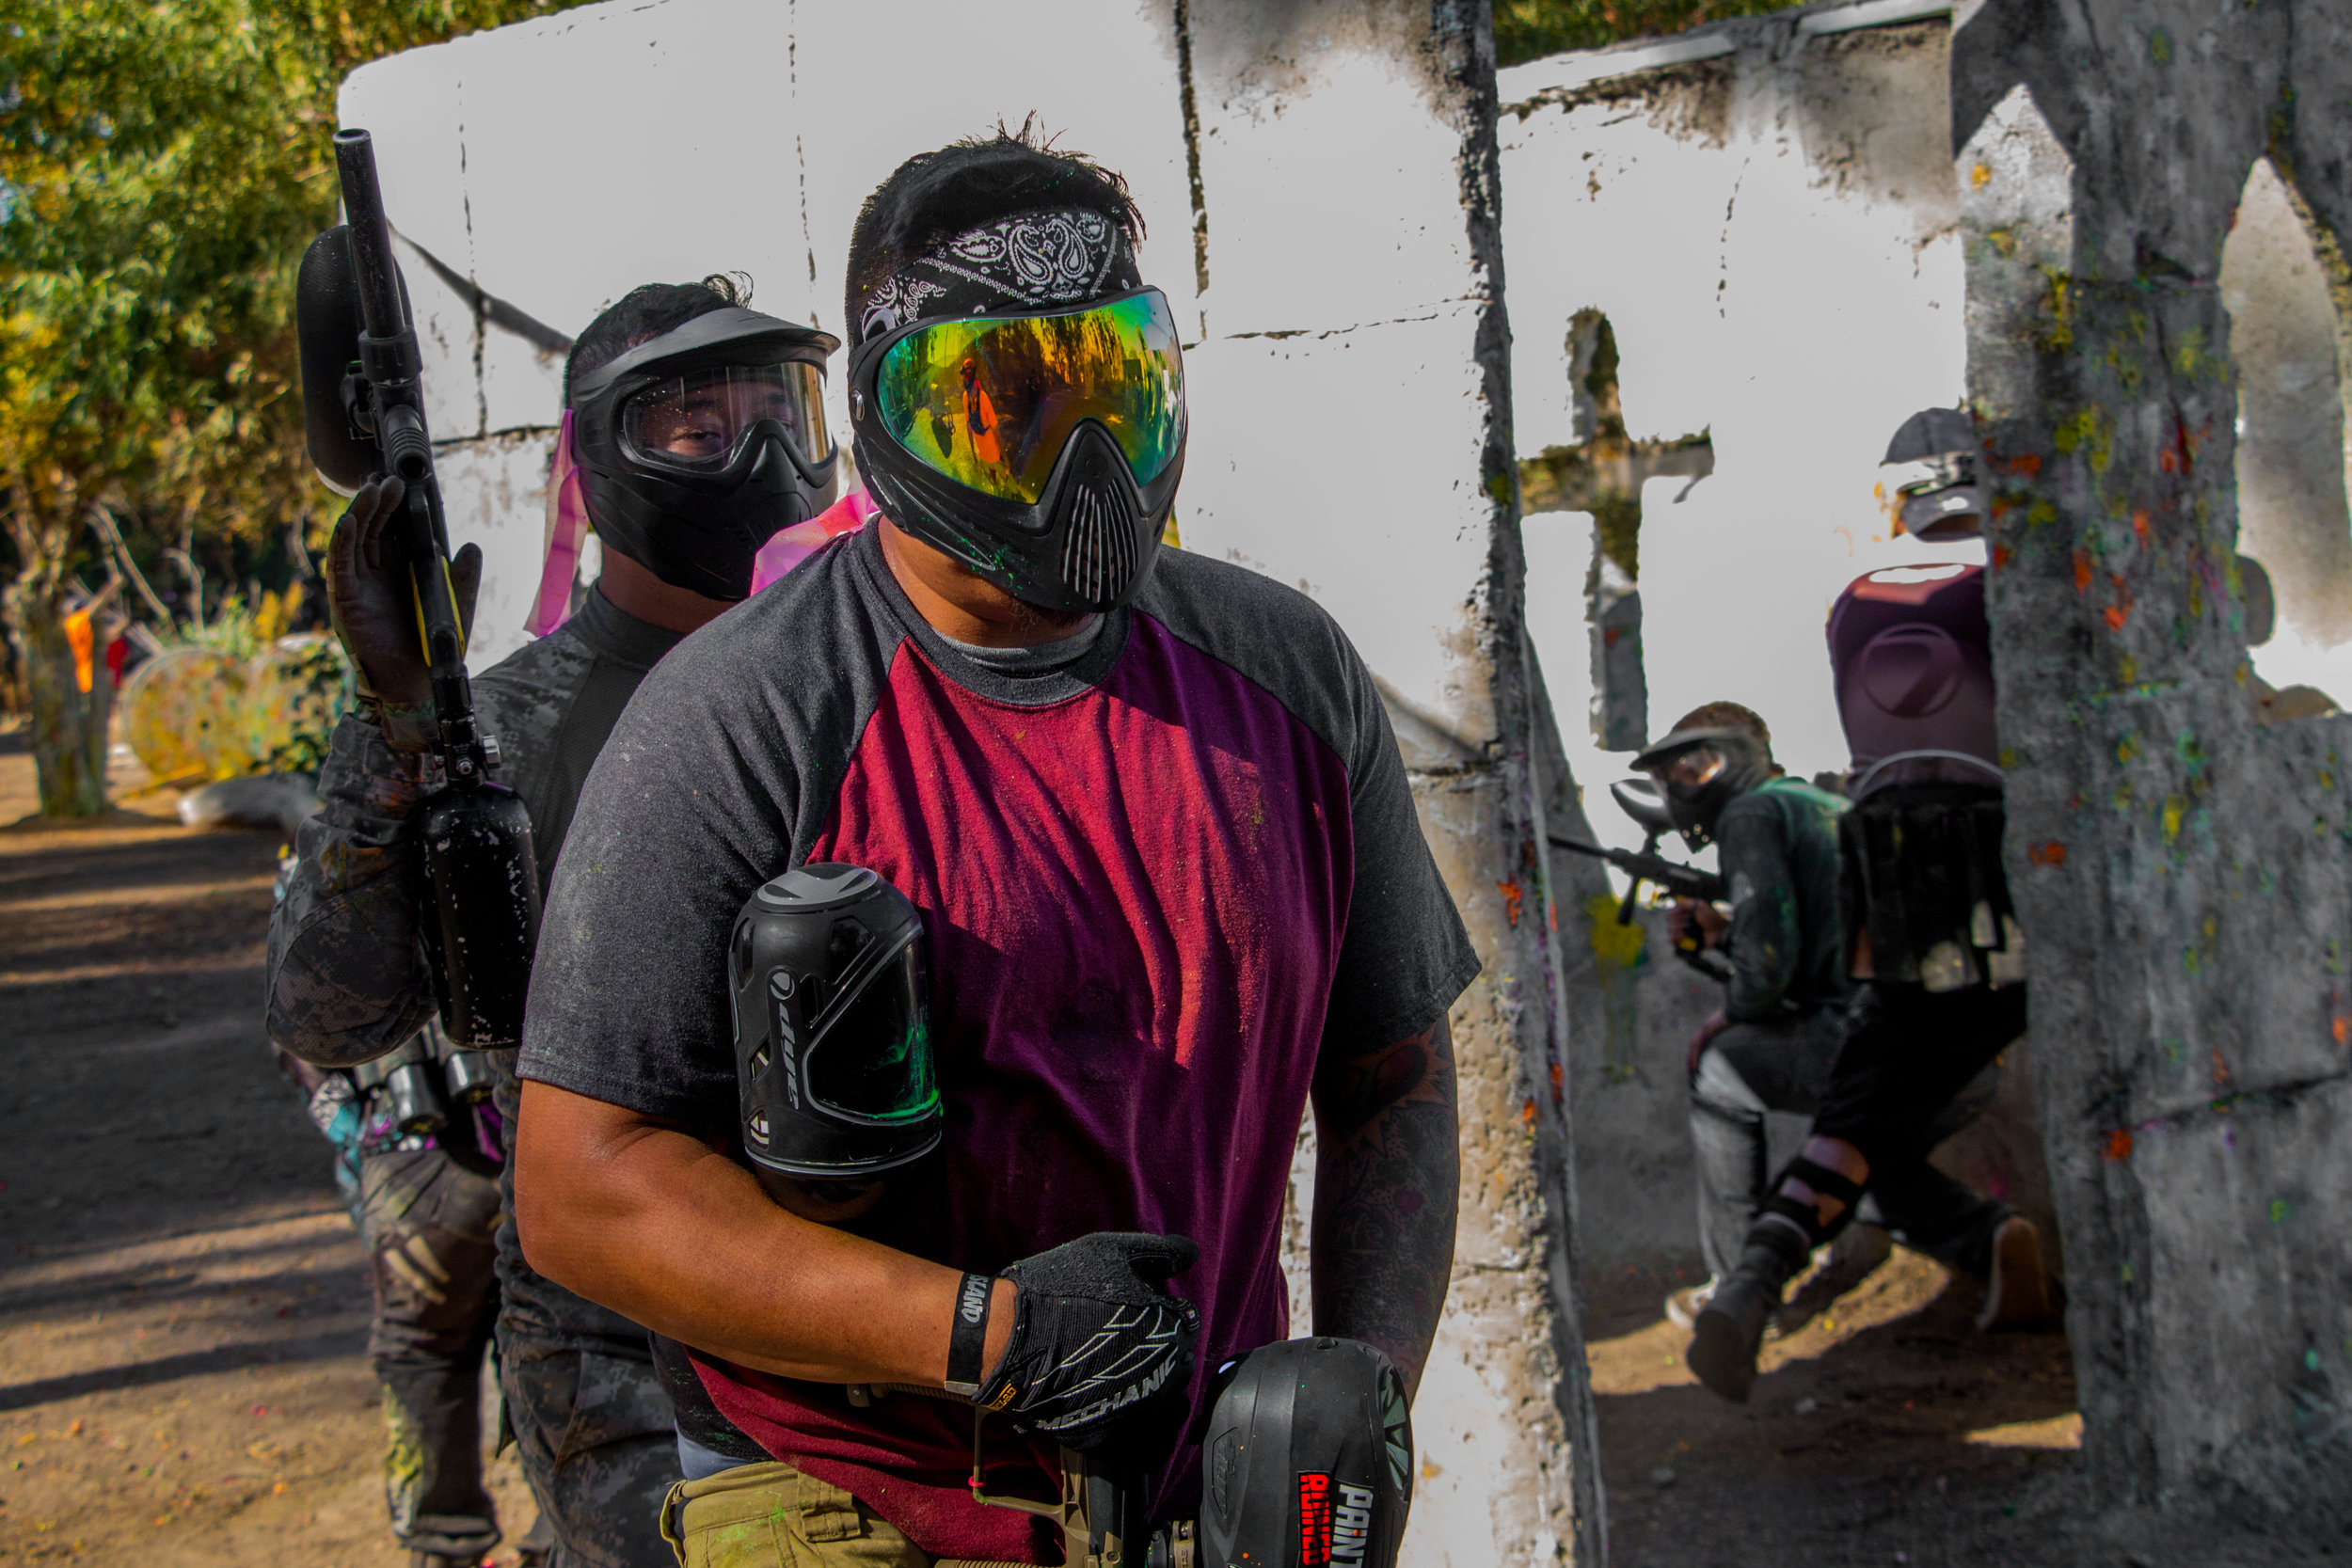 Jungle Island Paintball photo 18.jpg